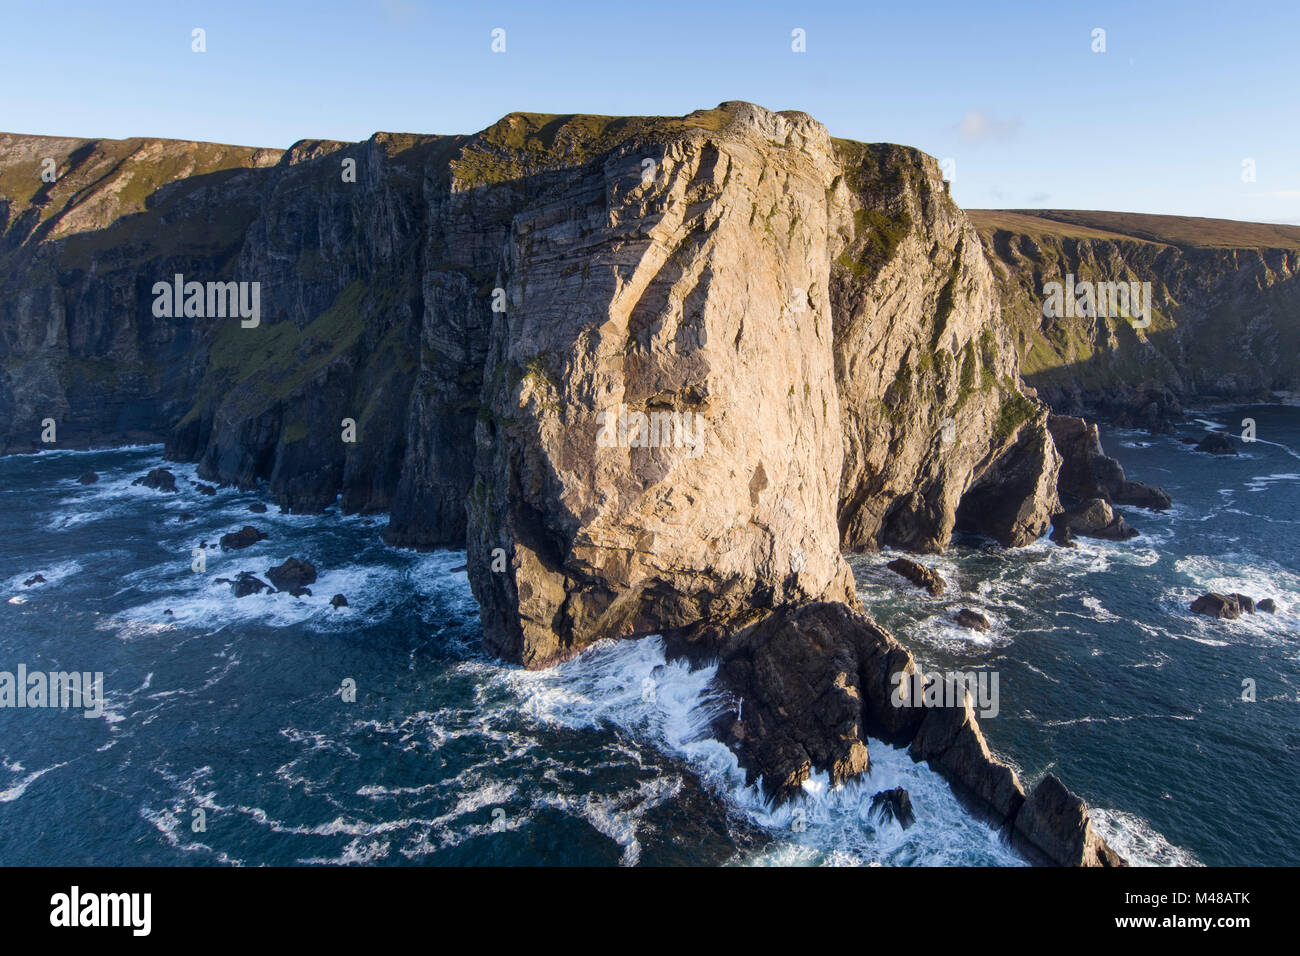 Aerial view of Benwee Head, County Mayo, Ireland. - Stock Image